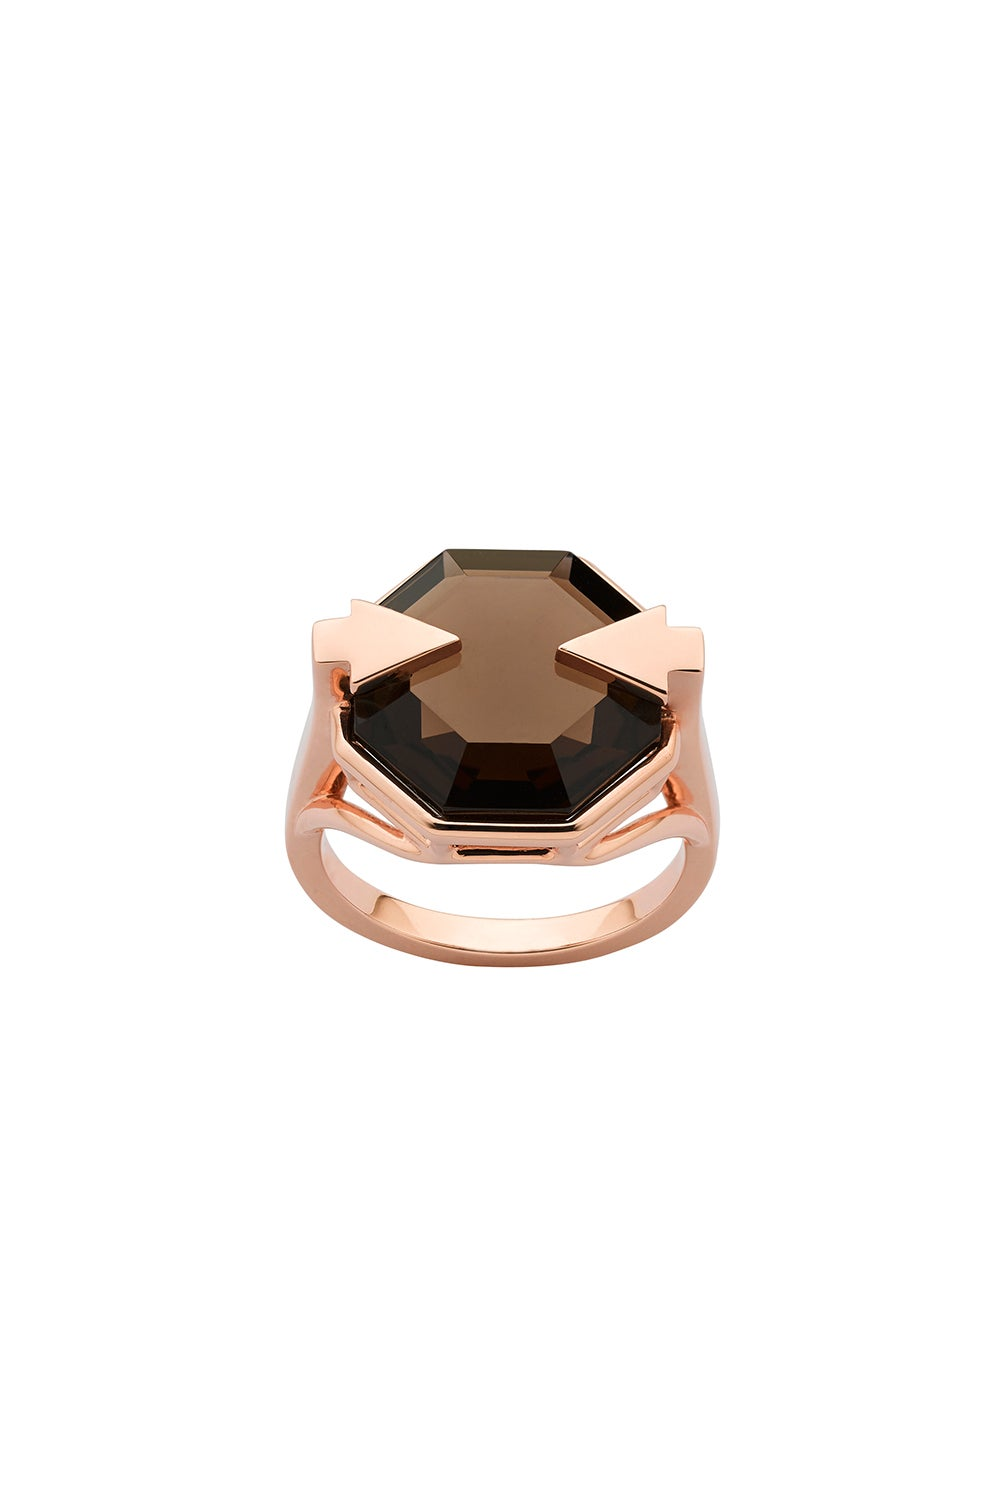 Astrid Ring Smoky Quartz Rose Gold